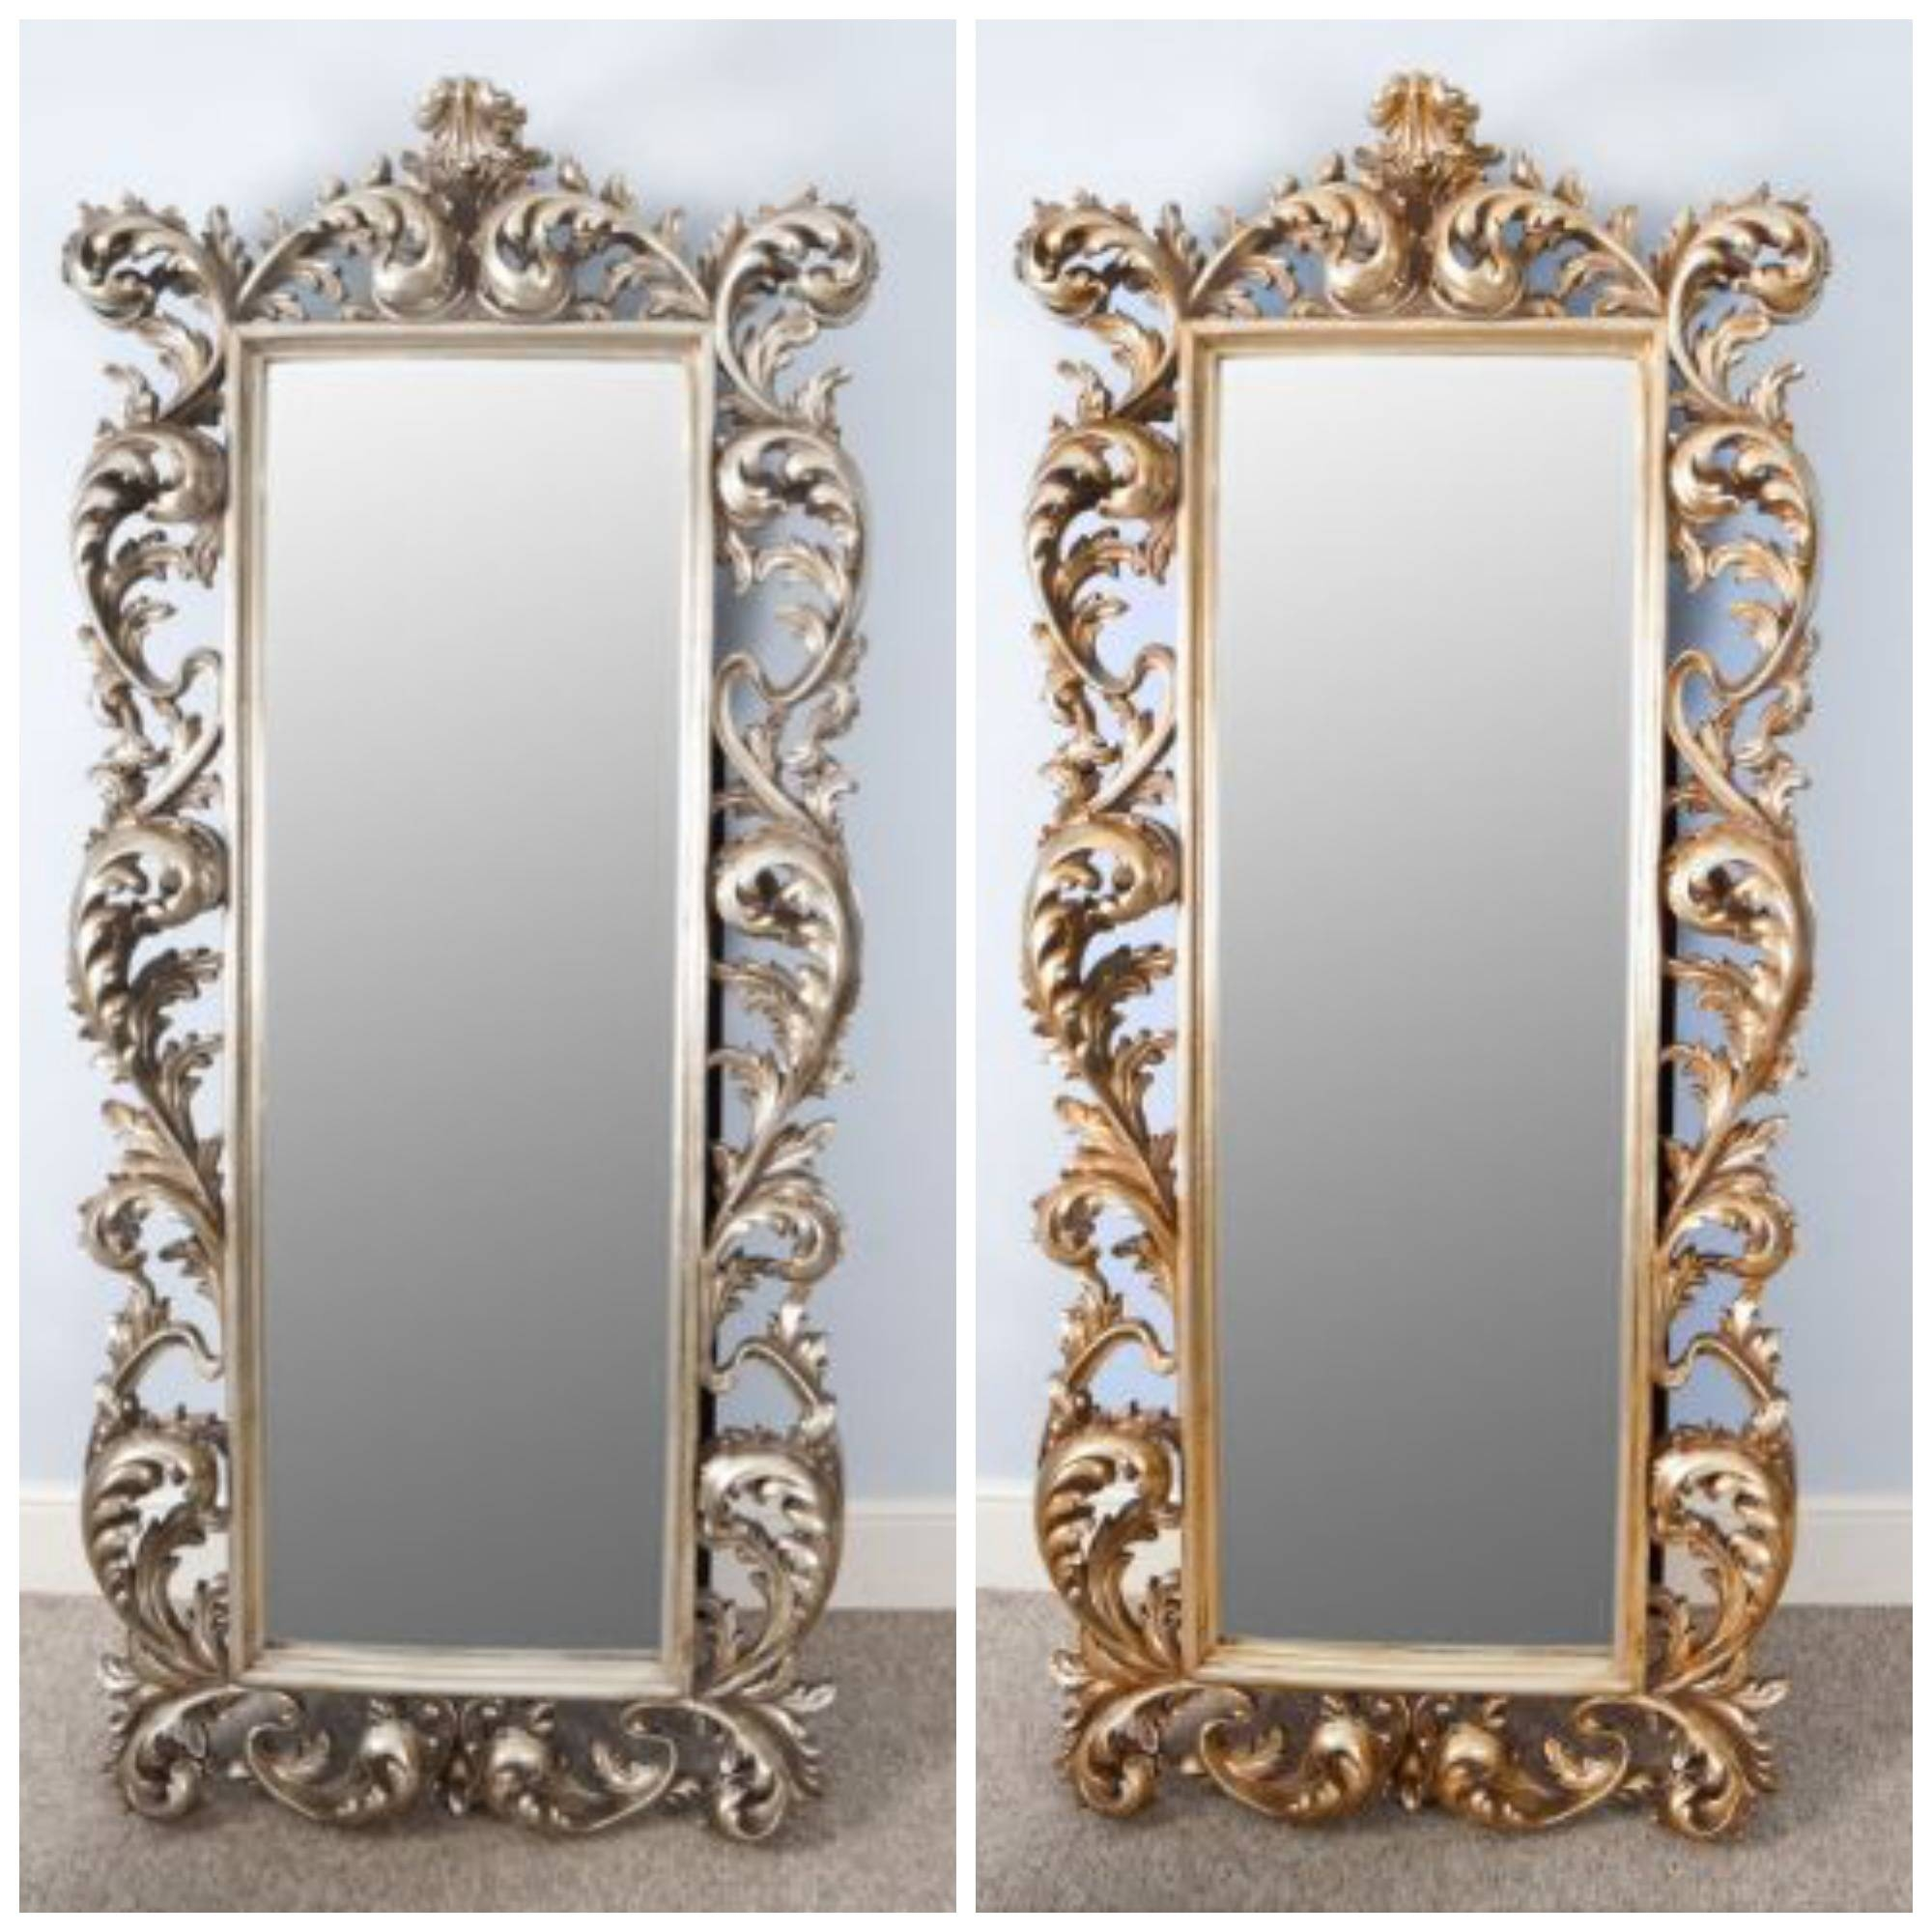 Download Decorative Gold Mirrors | Gen4Congress with regard to Big Gold Mirrors (Image 7 of 15)